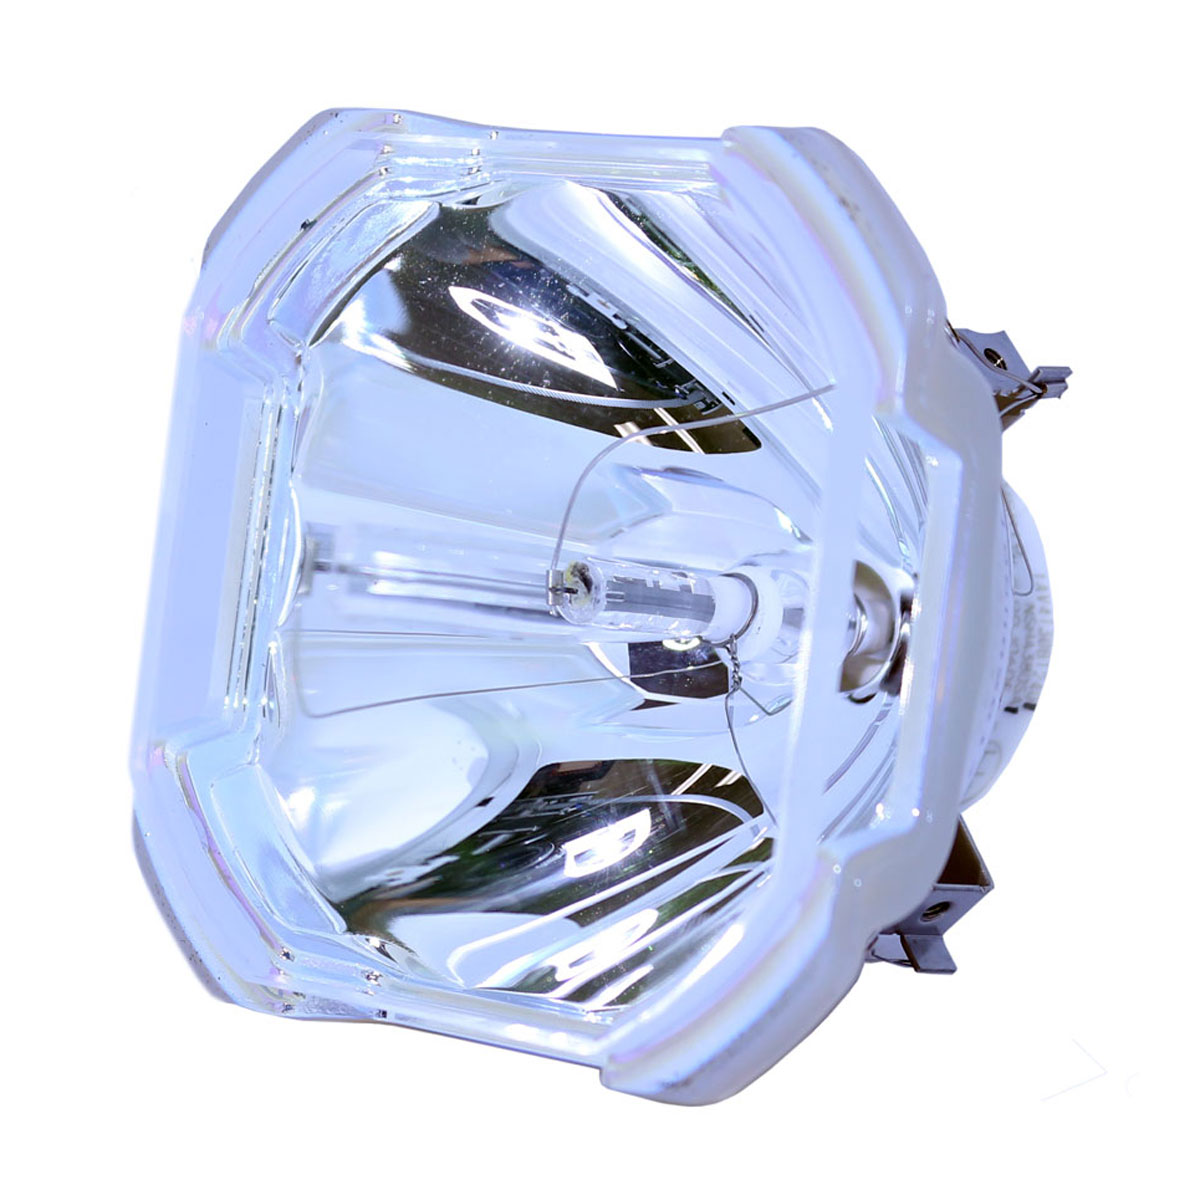 Compatible Bare Bulb POA-LMP146 LMP146 610-351-5939 for SANYO PLC-HF10000L Projector Bulb Lamp Without Housing Free Shipping  compatible bare bulb poa lmp57 lmp57 610 308 3117 for sanyo plc sw30 plc sw35 projector lamp bulb without housing free shipping